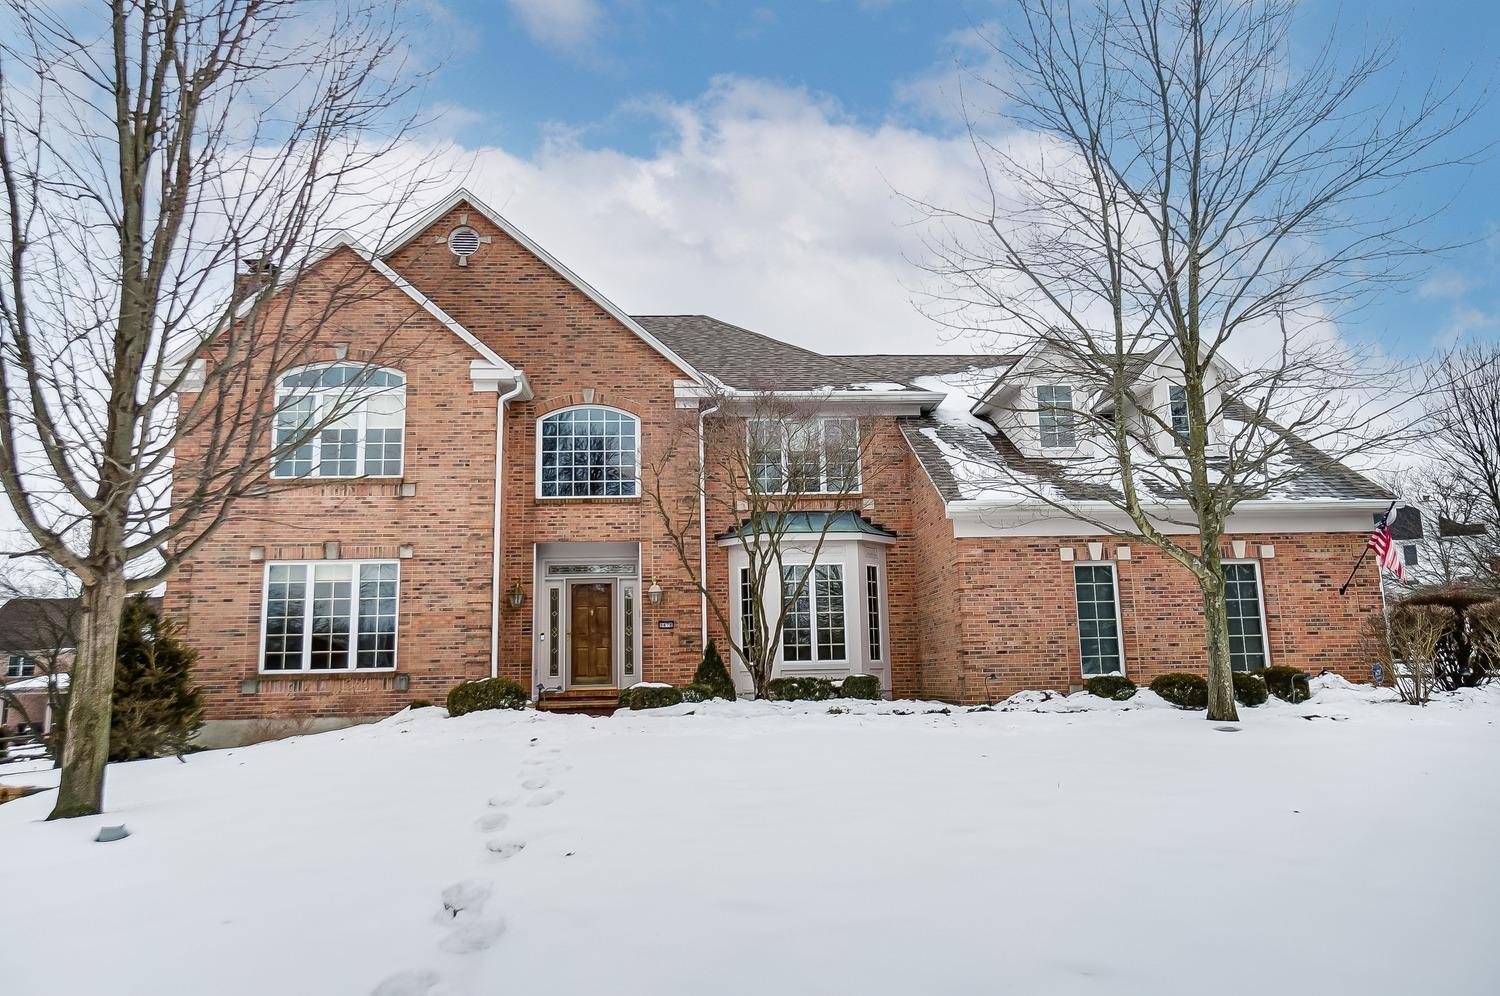 This GRAND home in Beckett Ridge has over 4500 finished sq feet with a finisher LL w/ walkout and an elevator (access to all 3 floors). Tall ceilings, new carpet, fresh paint, white trim, 3 season rm, 3 car garage w/custom workshop...this home has it all! Tons of room to entertain-this can be your forever home. Accepting all offers thru Sunday 5pm.  Seller res rt to accept anytime once home is active. See 3D Tour